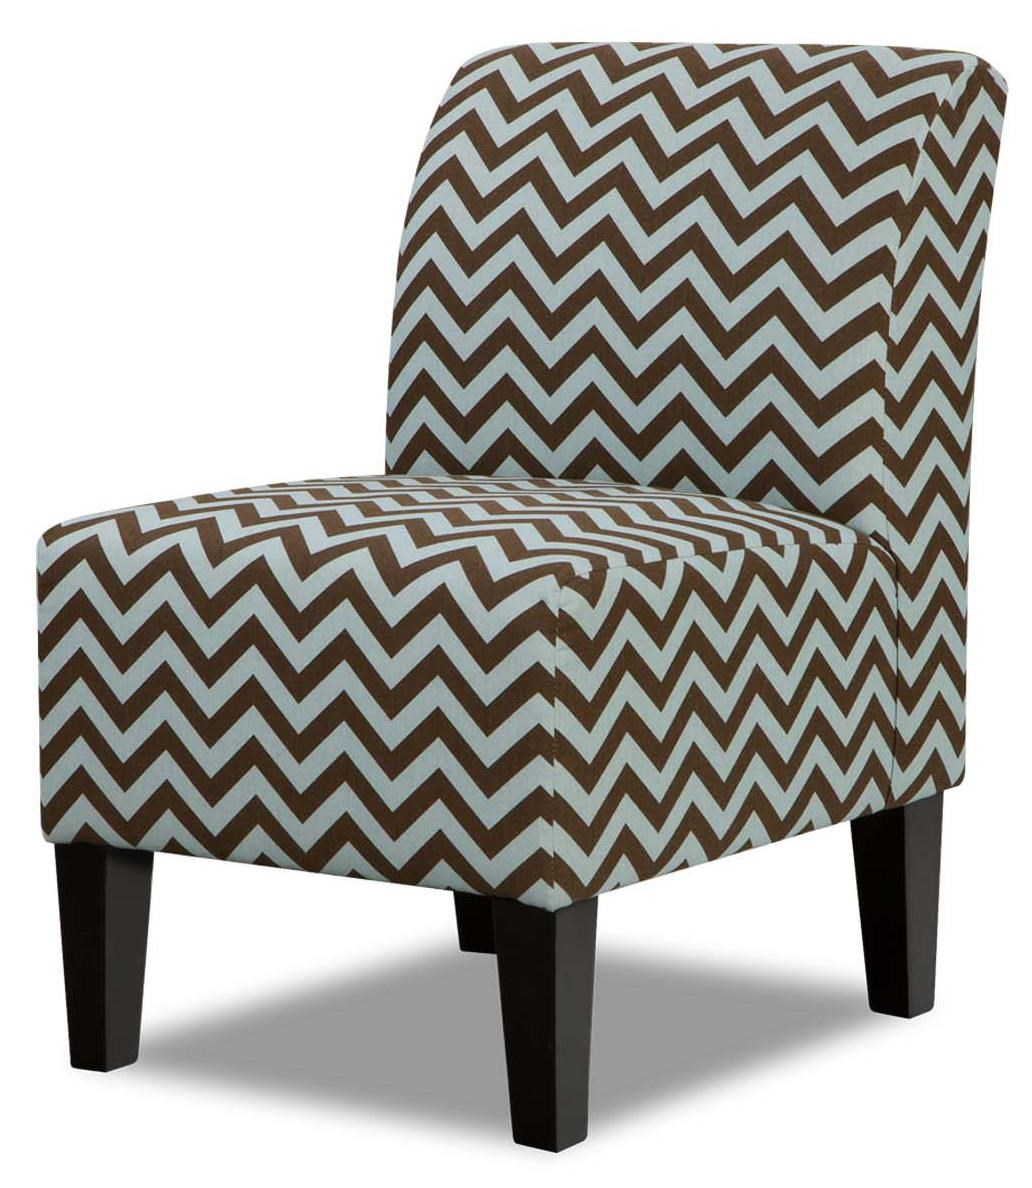 Shown In: Brown And Blue Chevron Pattern